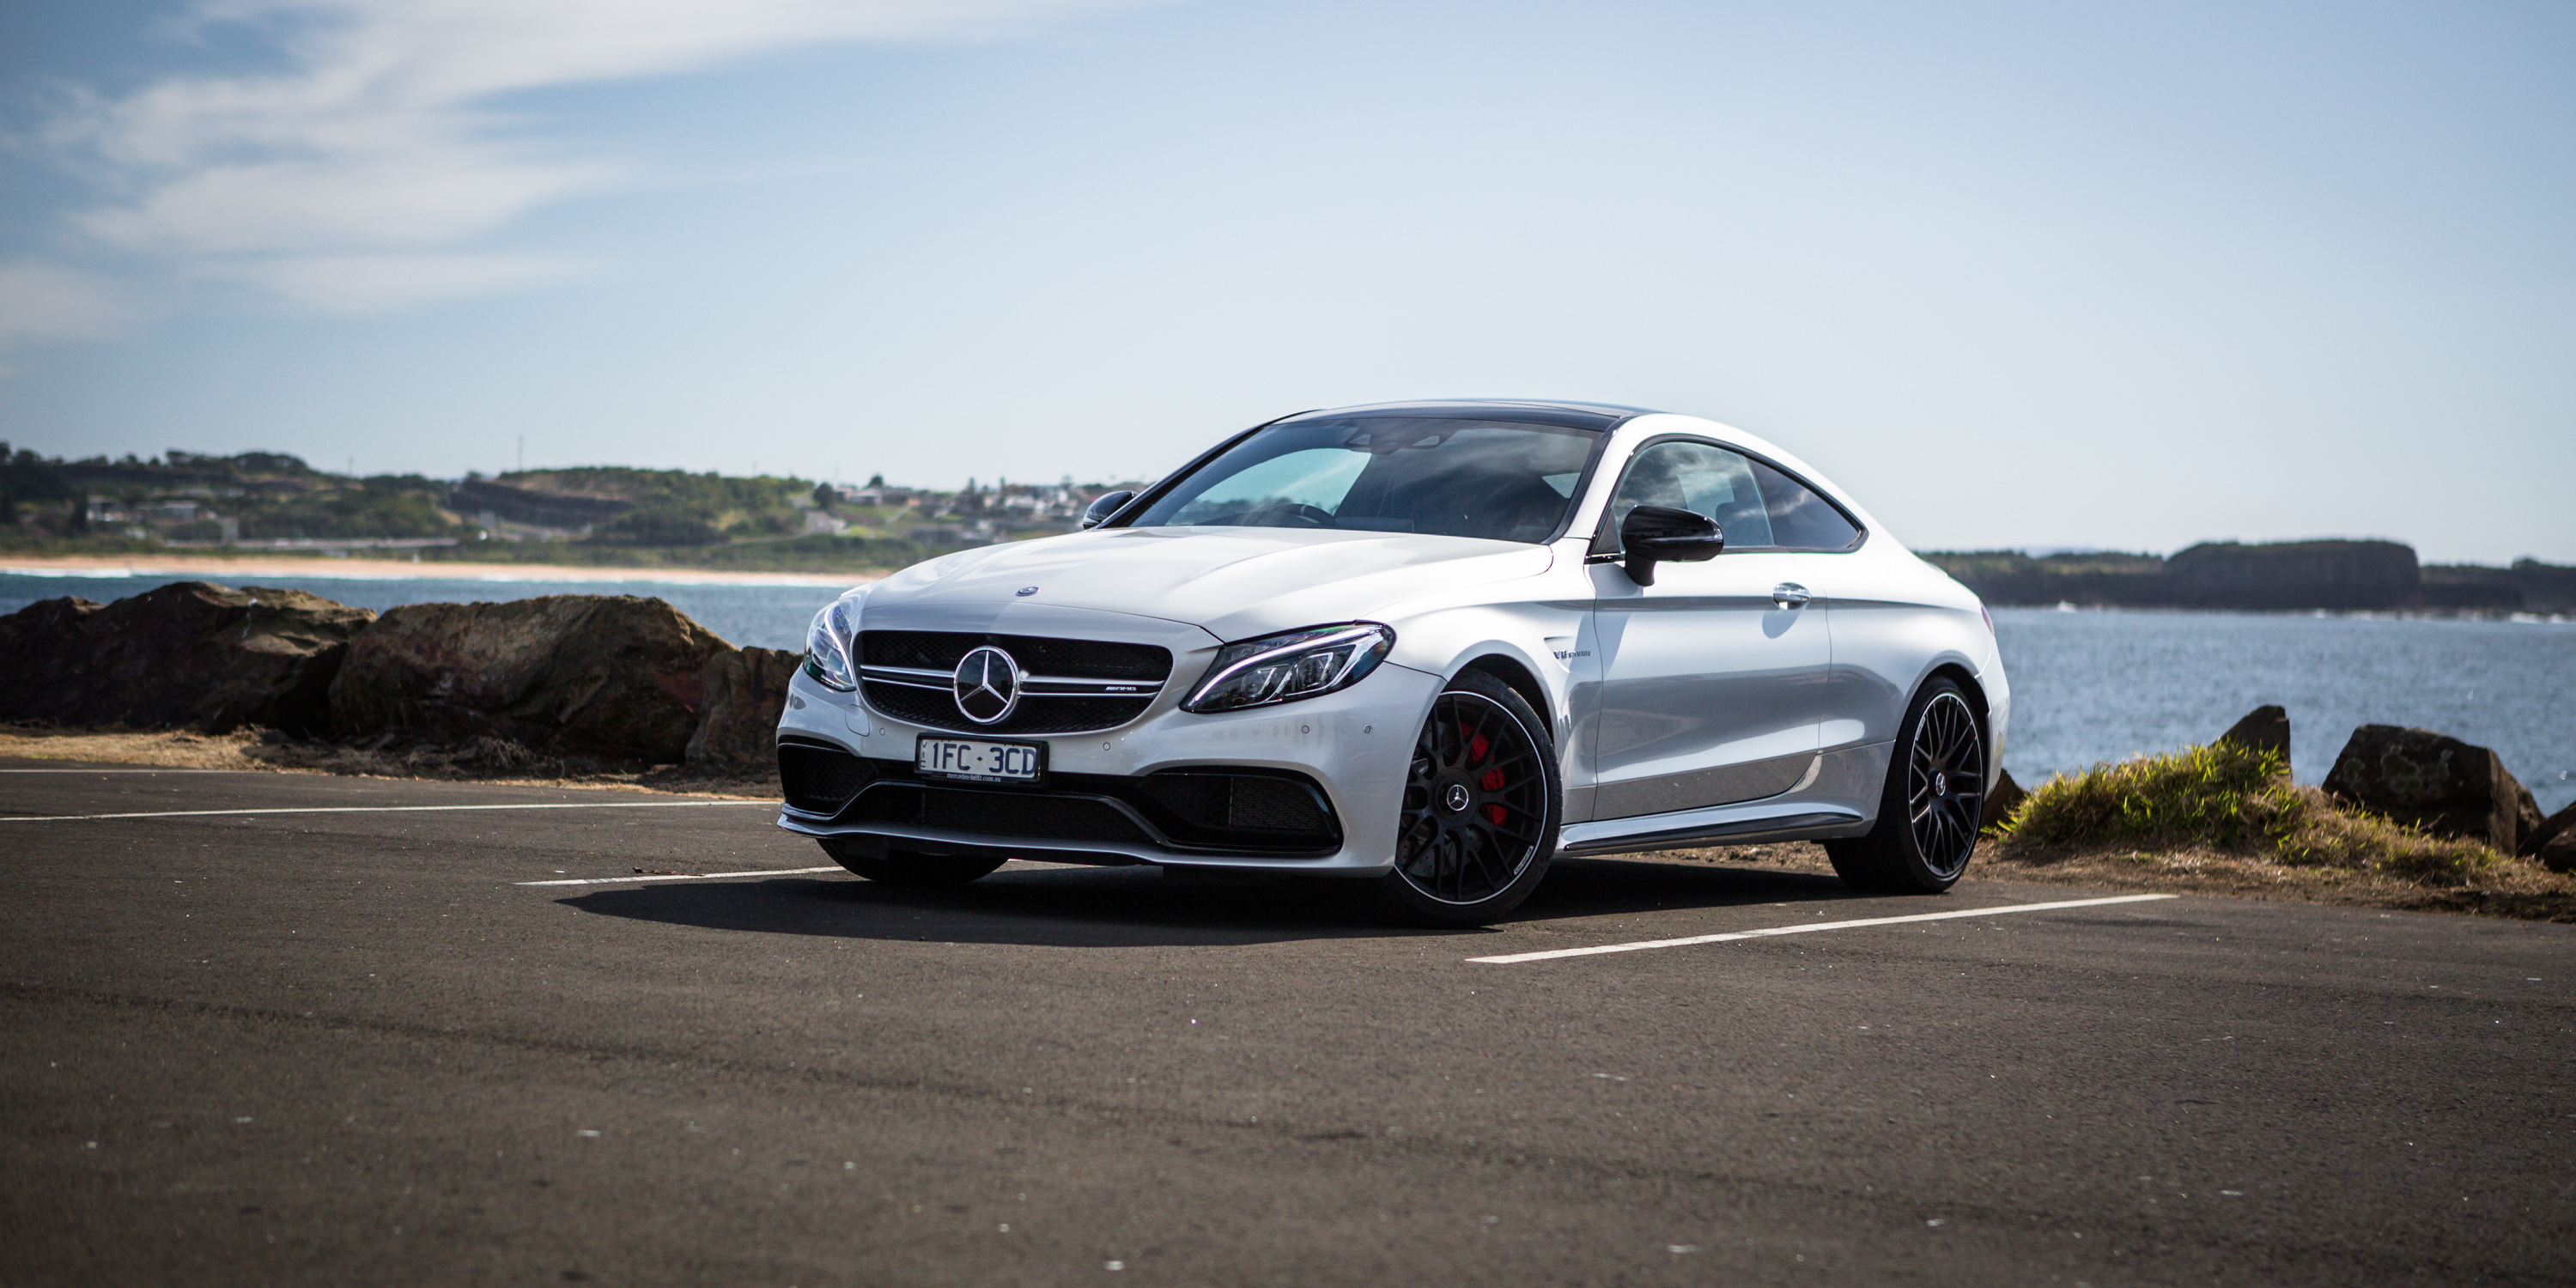 2017 mercedes amg c63 s coupe review caradvice for Mercede benz amg